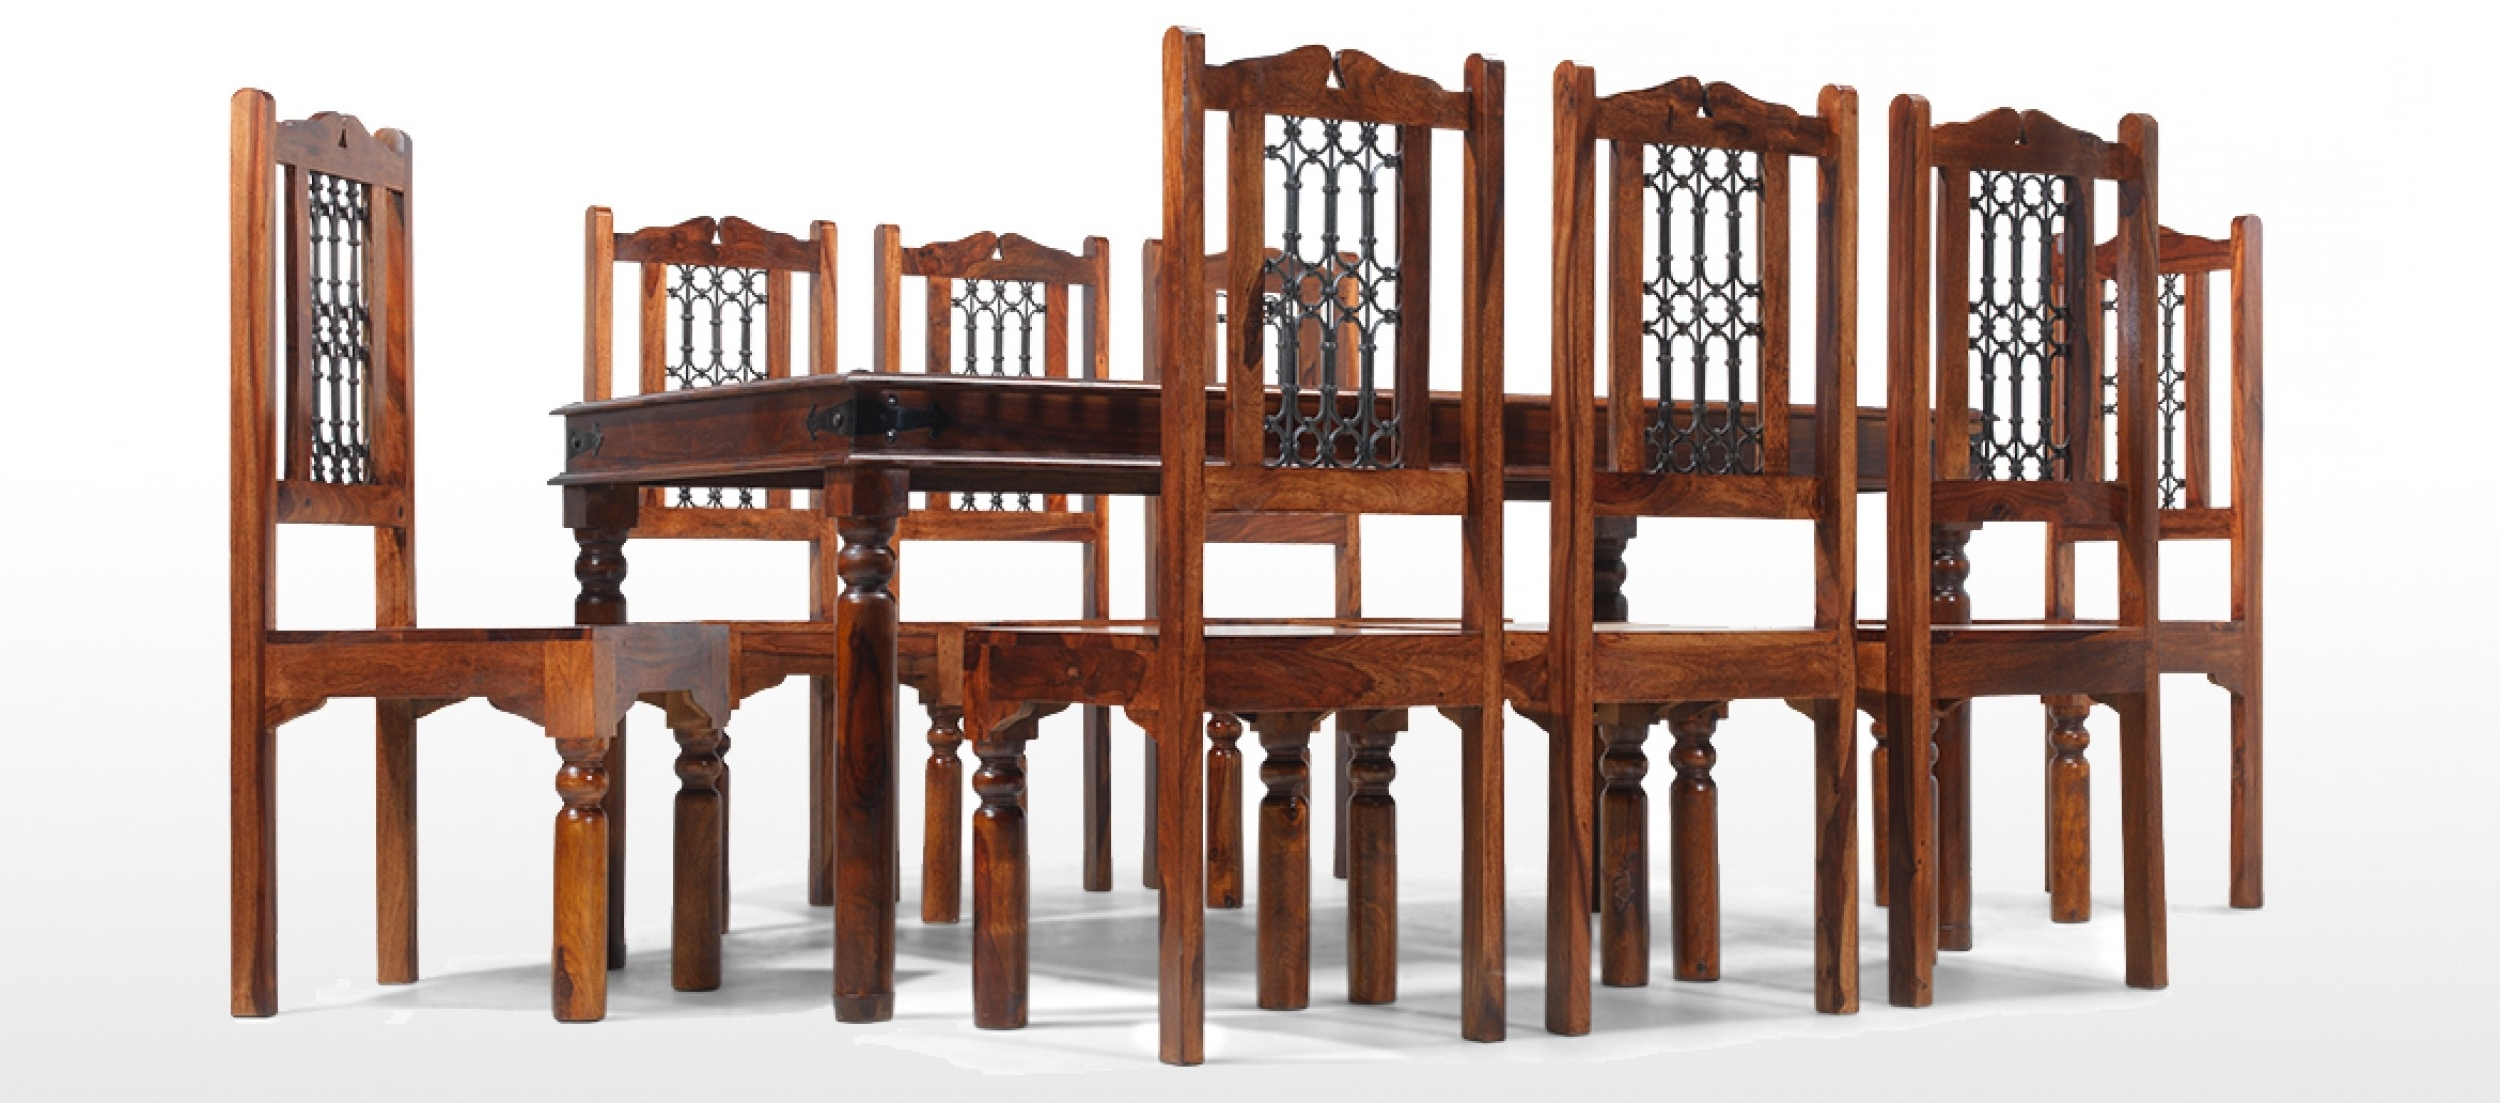 Quercus Living Pertaining To Dining Tables 8 Chairs (View 19 of 25)